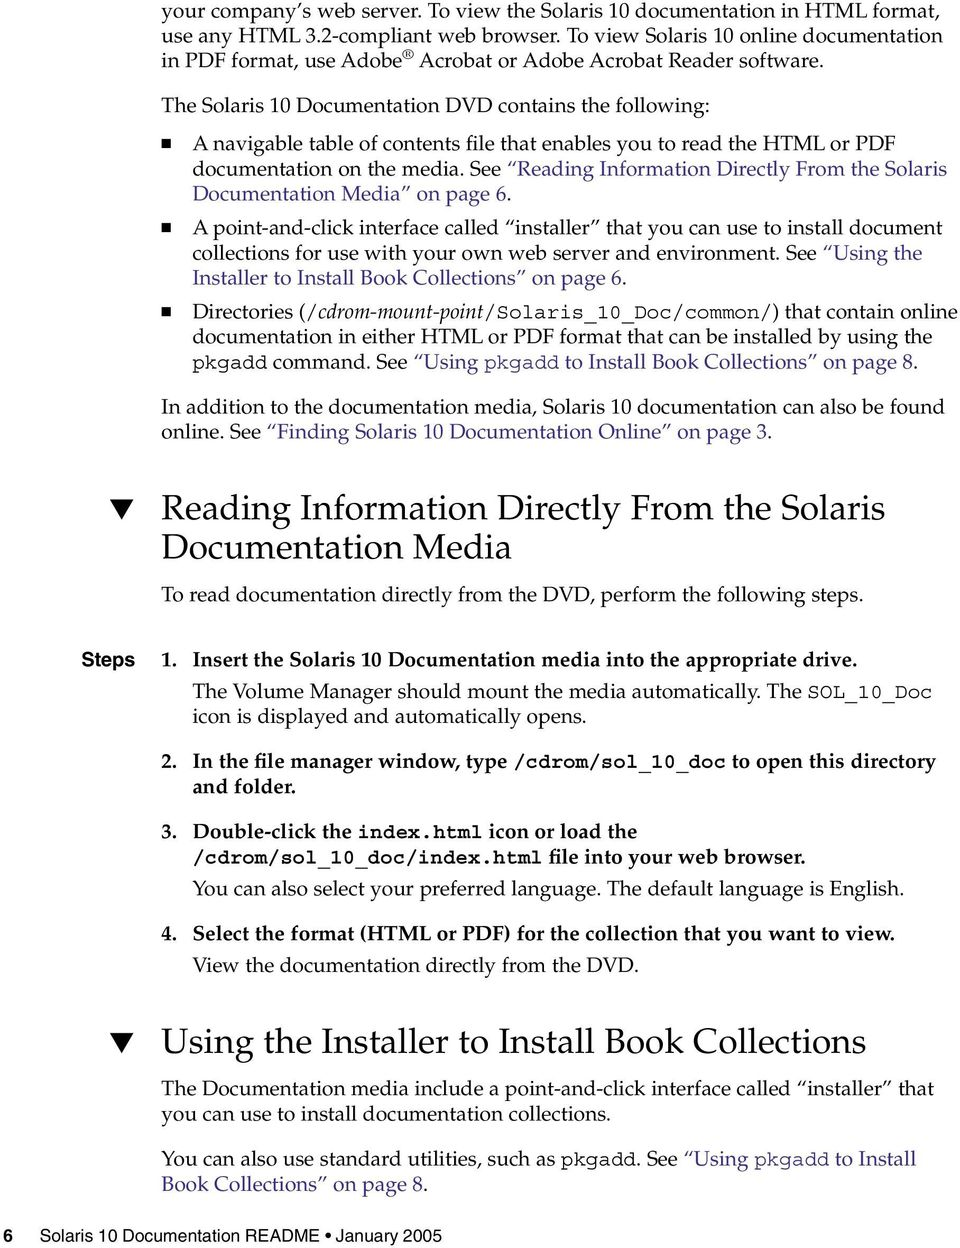 The Solaris 10 Documentation DVD contains the following: A navigable table of contents file that enables you to read the HTML or PDF documentation on the media.